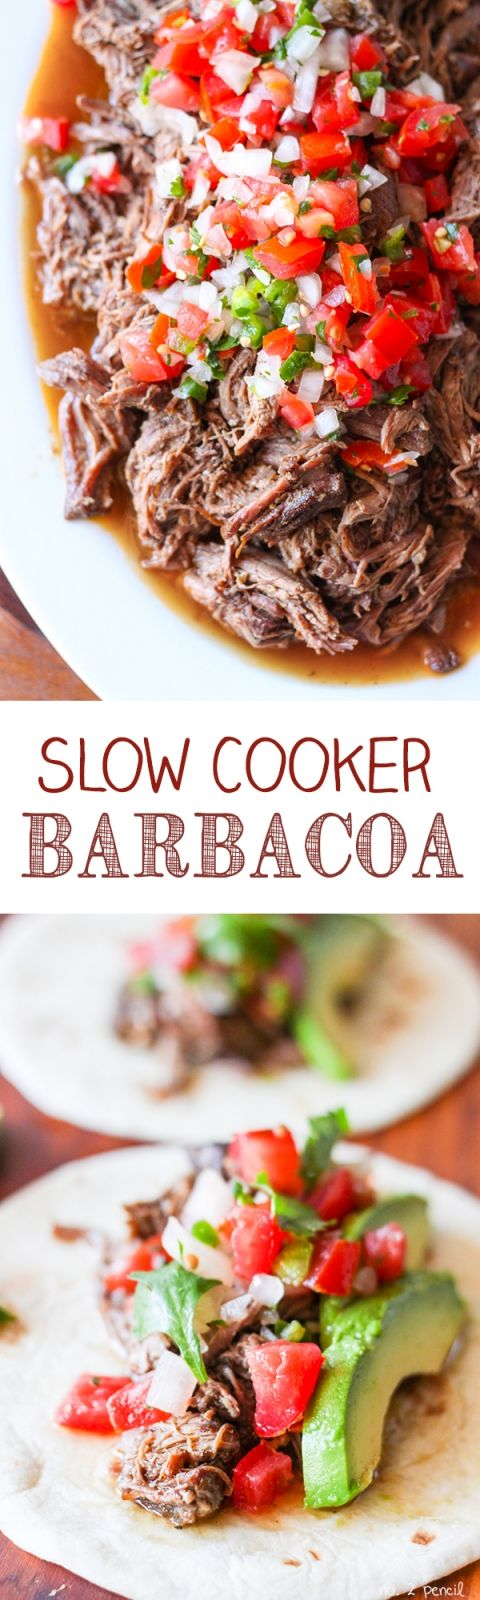 Slow Cooker Barbacoa Beef- I would add in a couple cups of water during the cooking process once you've crisped up the edges of the roast